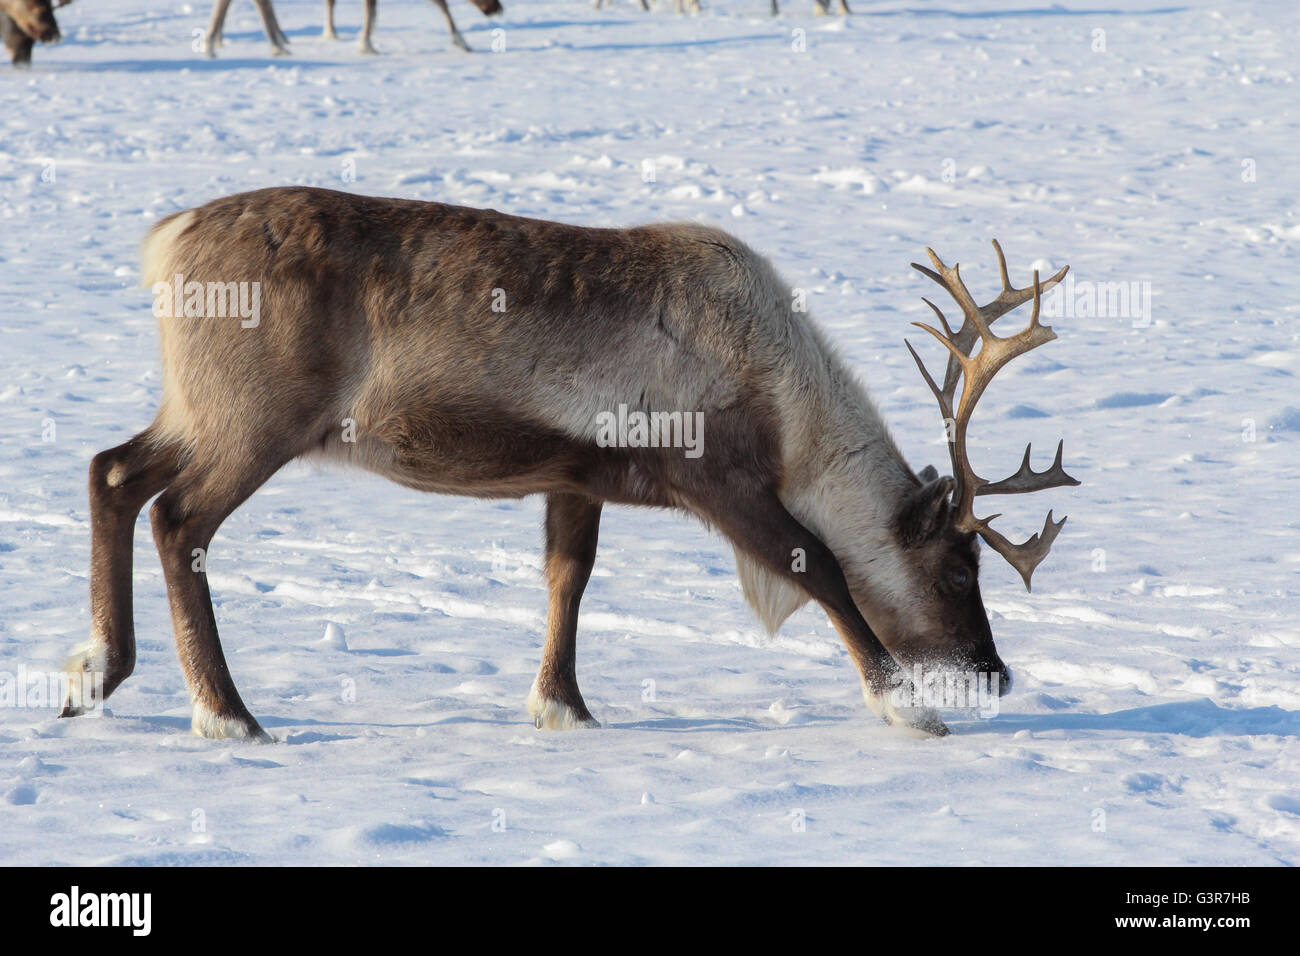 Deer looking for reindeer moss under the snow cover. - Stock Image